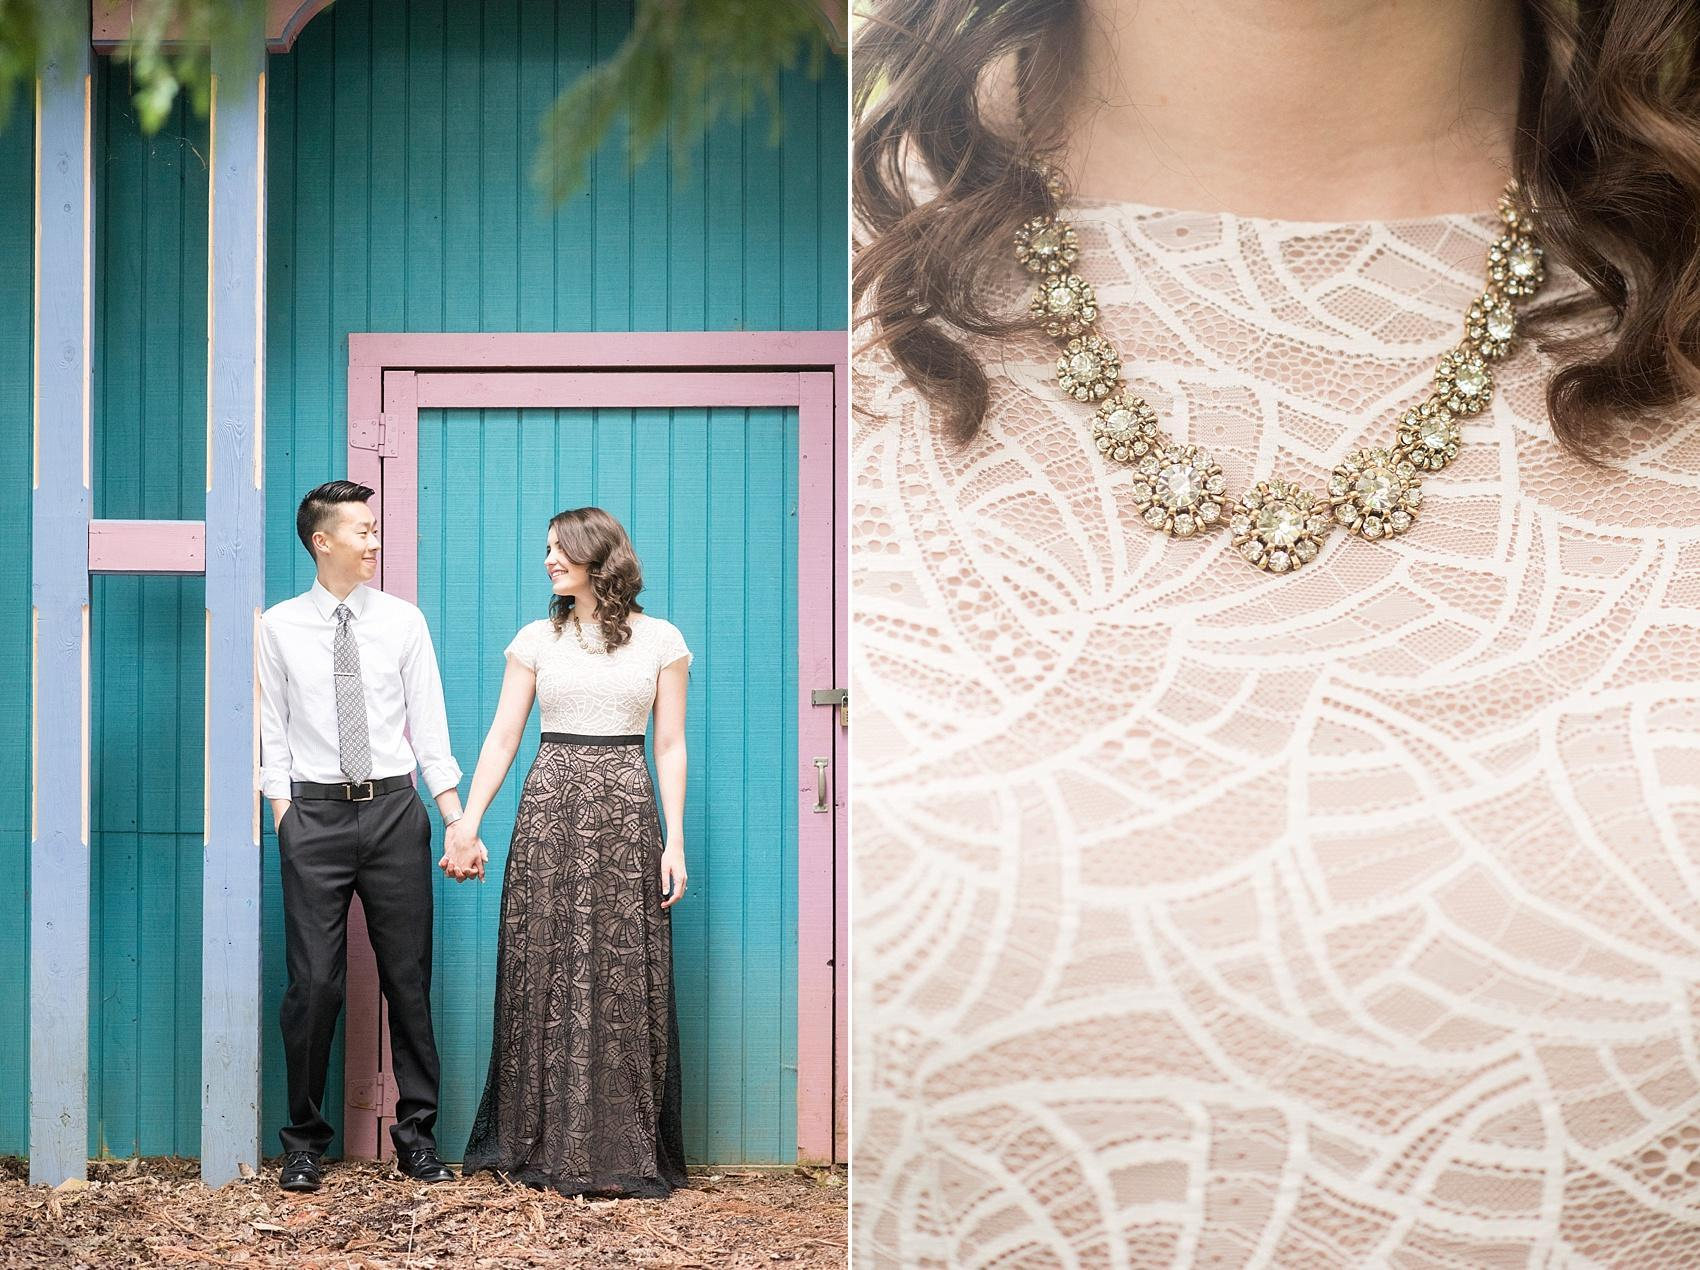 Raleigh North Carolina wedding photographer, Mikkel Paige Photography, photographs a colorful engagement session at Raulston Arboretum at NC State campus with Rent the Runway and a statement necklace for the bride.